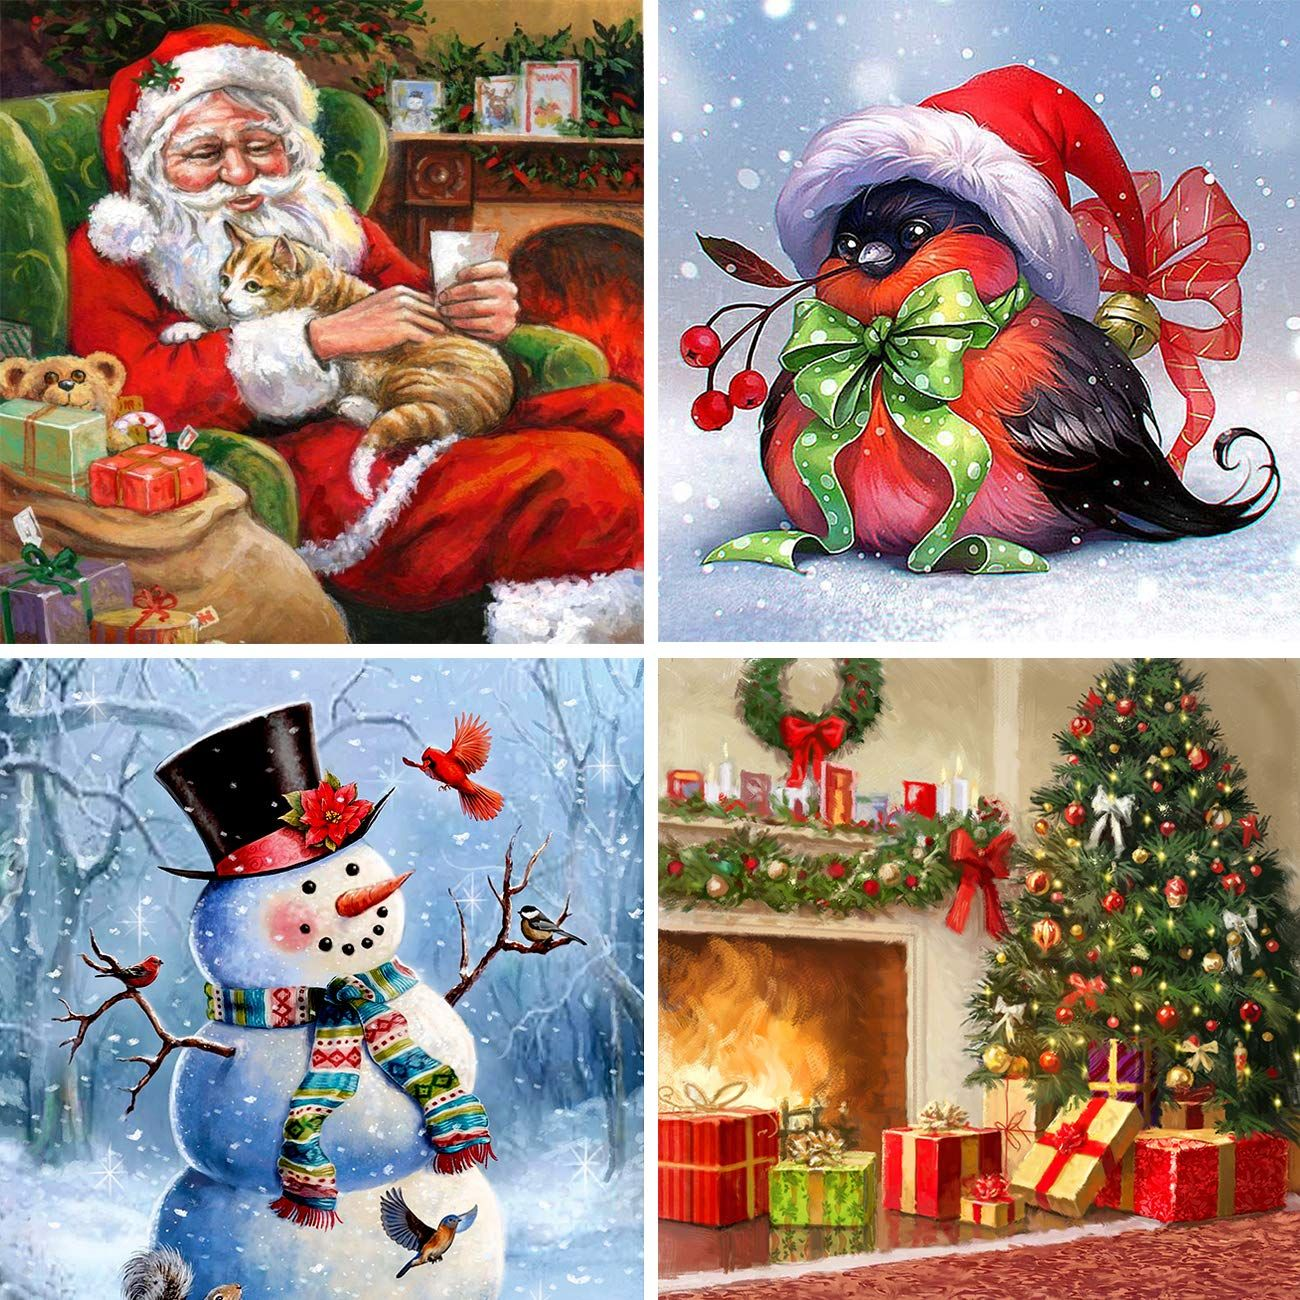 Ginfonr 4 Pack 5d Diamond Painting Full Drill Santa Bird Snowman Christmas Tree Xmas Gift Rhinestone E In 2020 Painting Crafts Snowman Christmas Tree Embroidery Craft